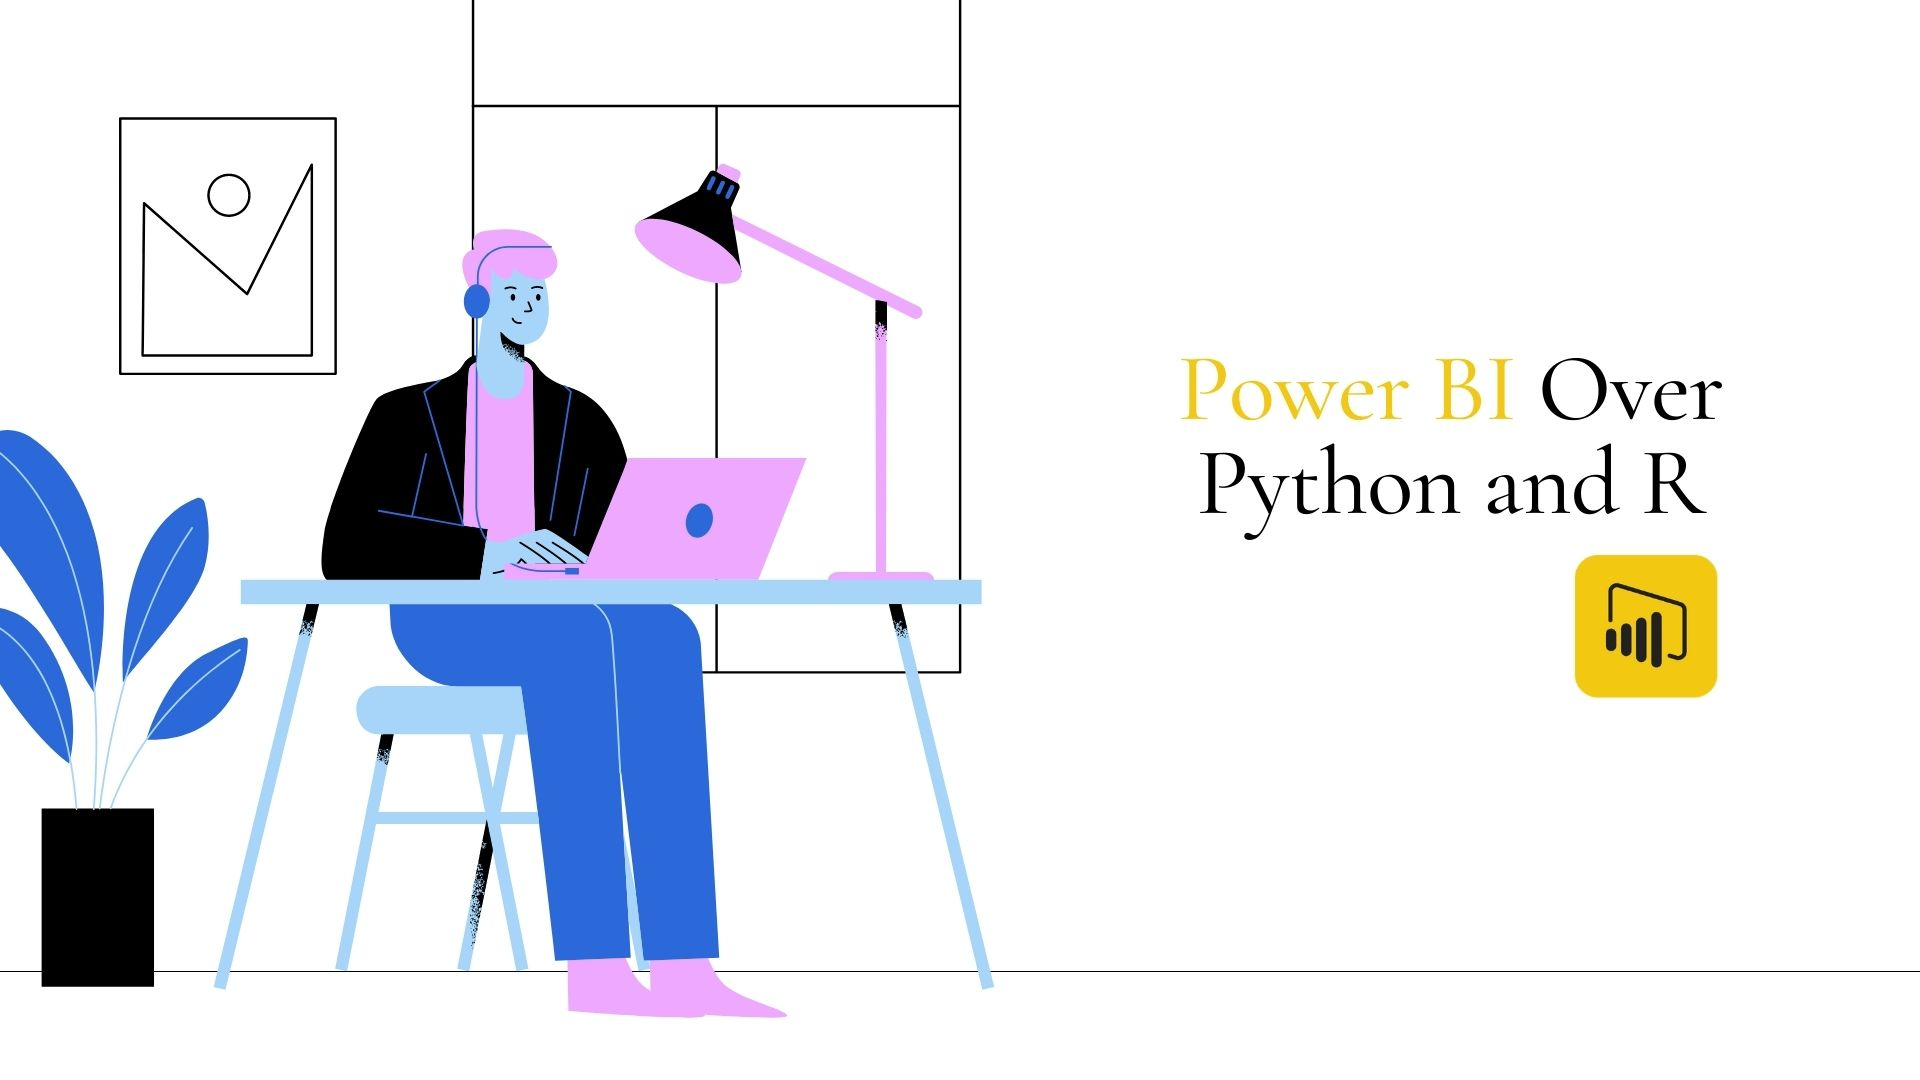 What Are The Advantages Of Power BI Over Python Or R? - thumb image